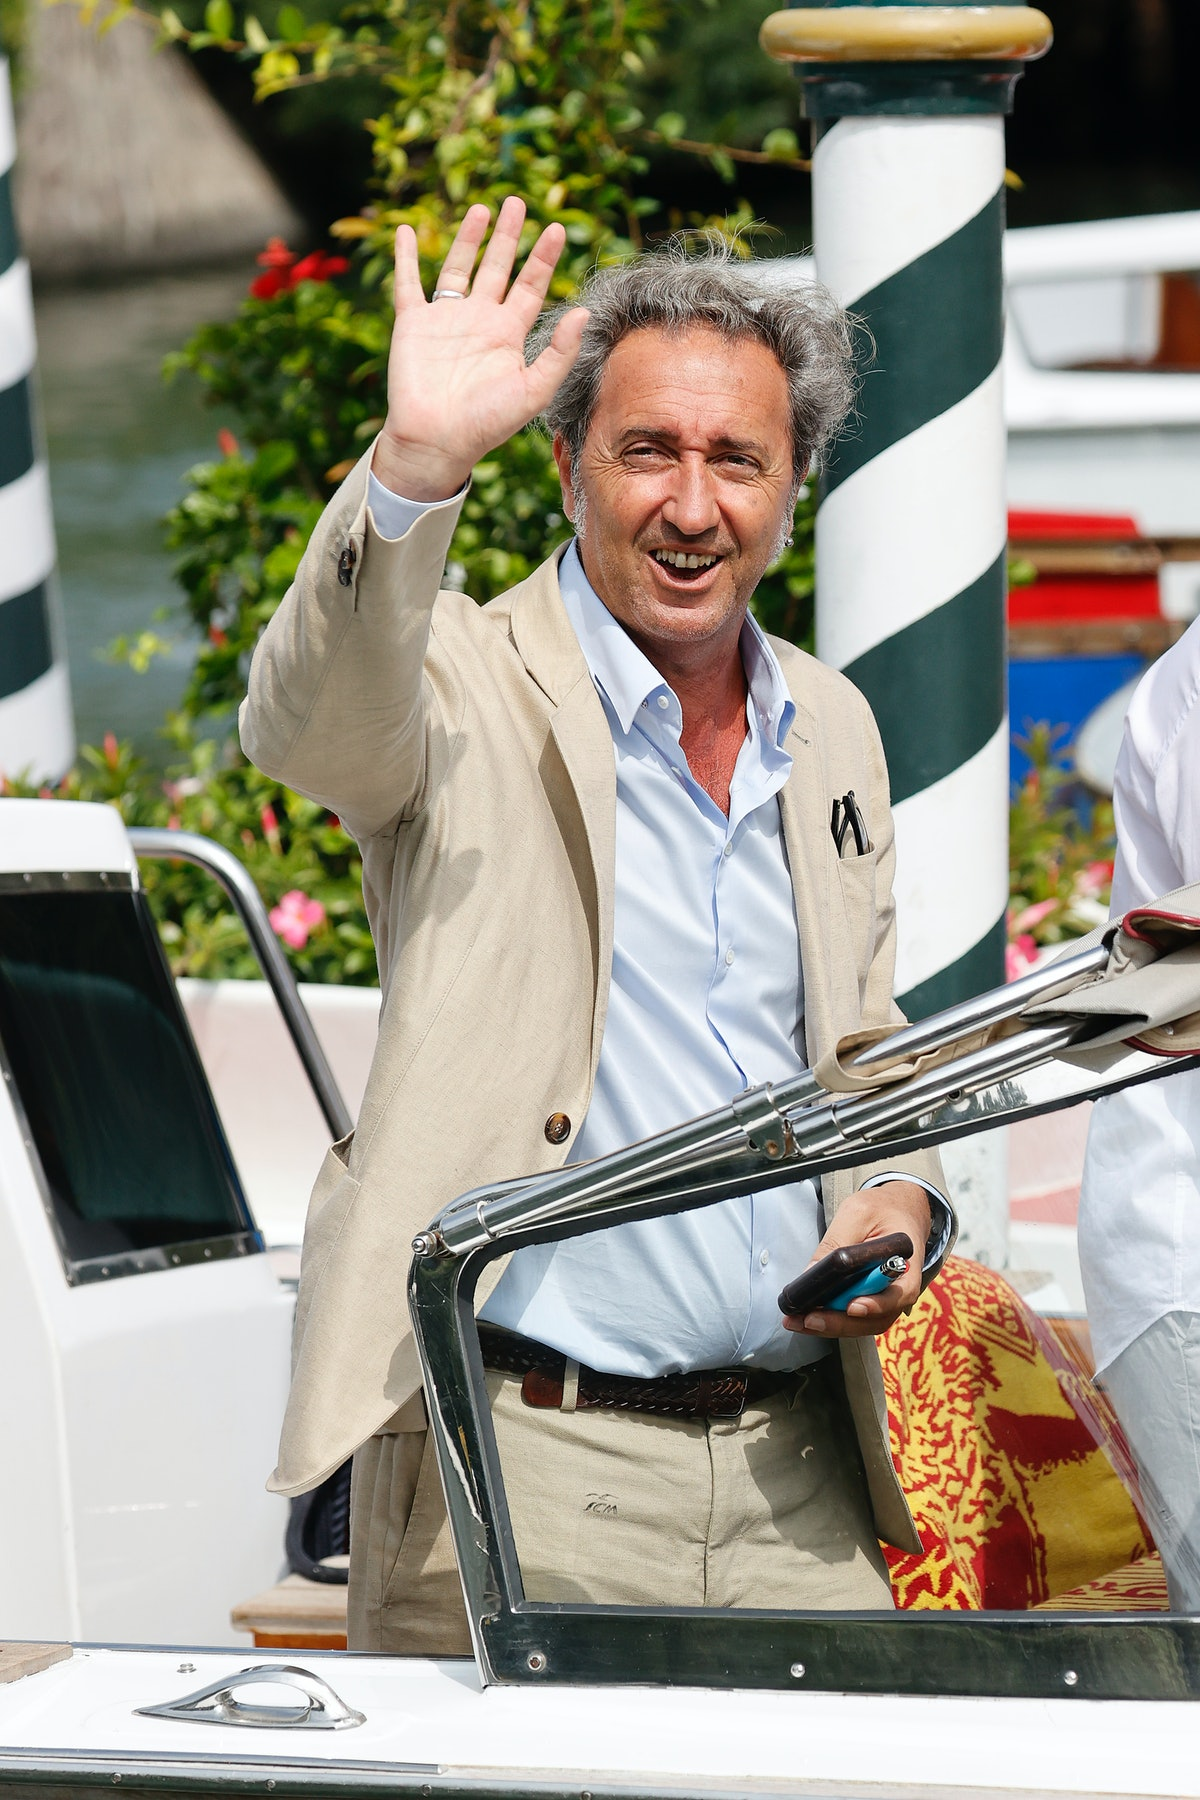 Paolo Sorrentino in a tan suit waving